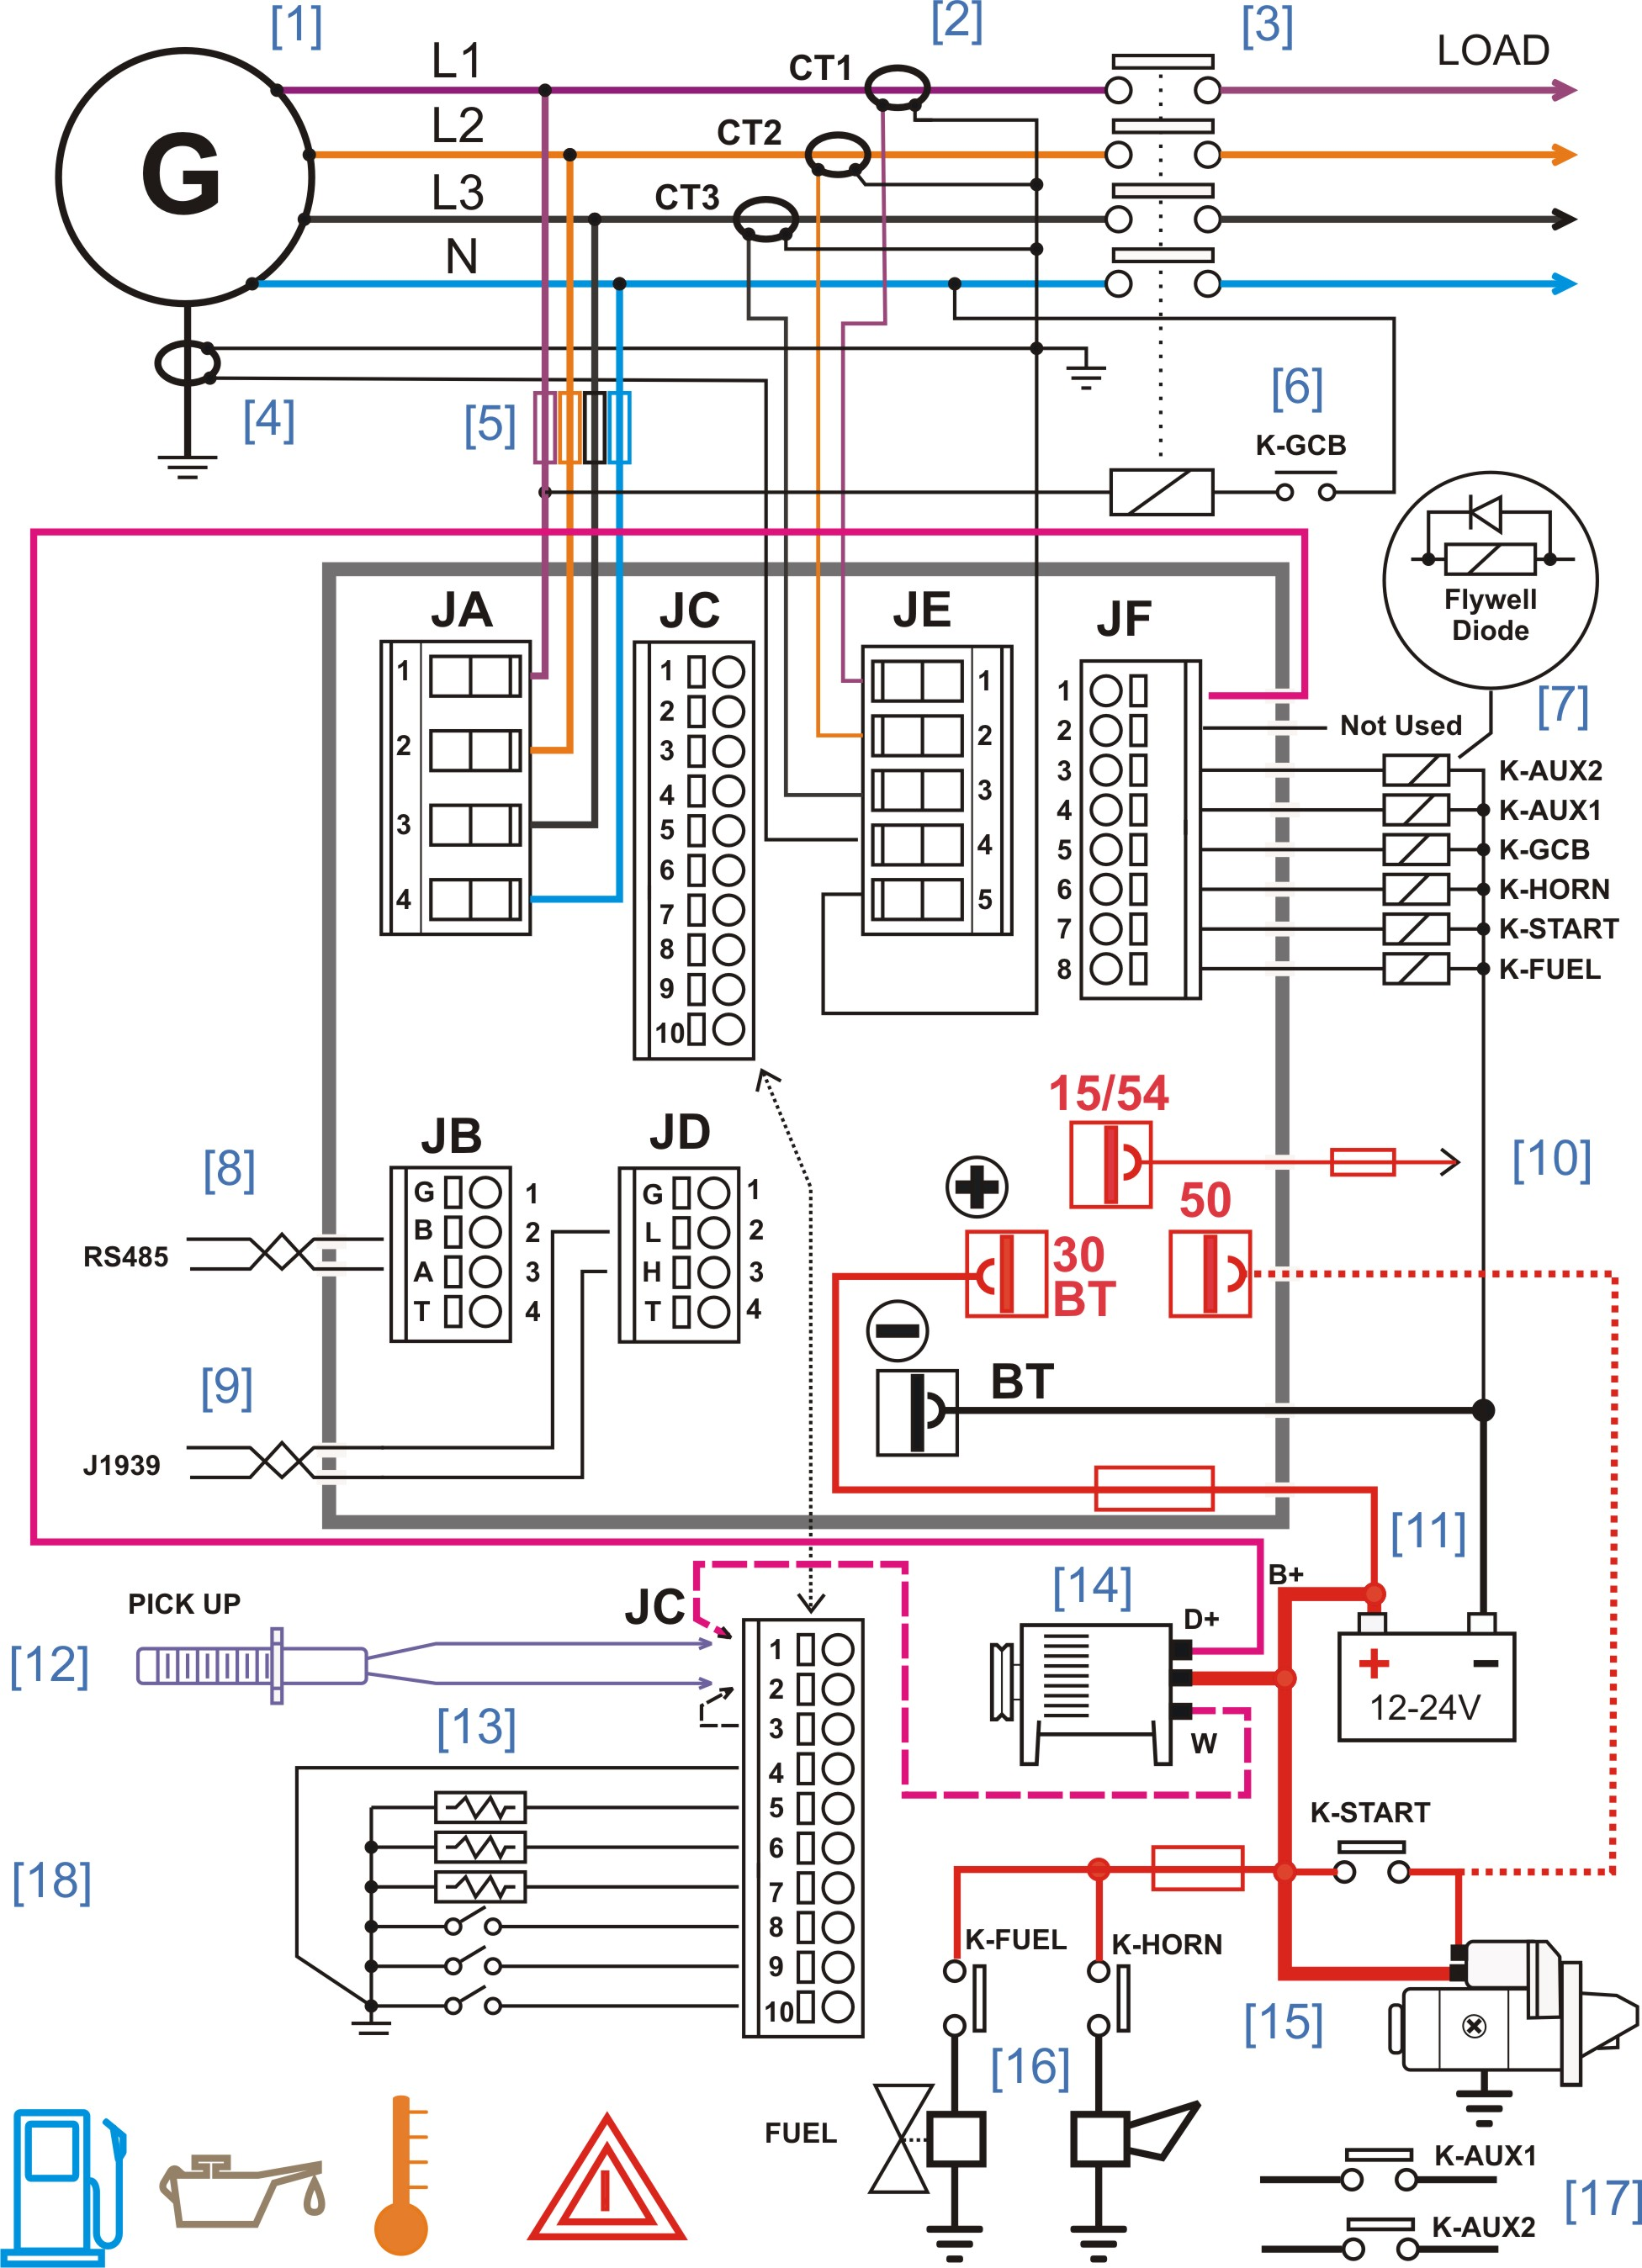 equinox ke wiring diagram on 2005 equinox wiring diagram chevy equinox wiring diagram  [ 1952 x 2697 Pixel ]